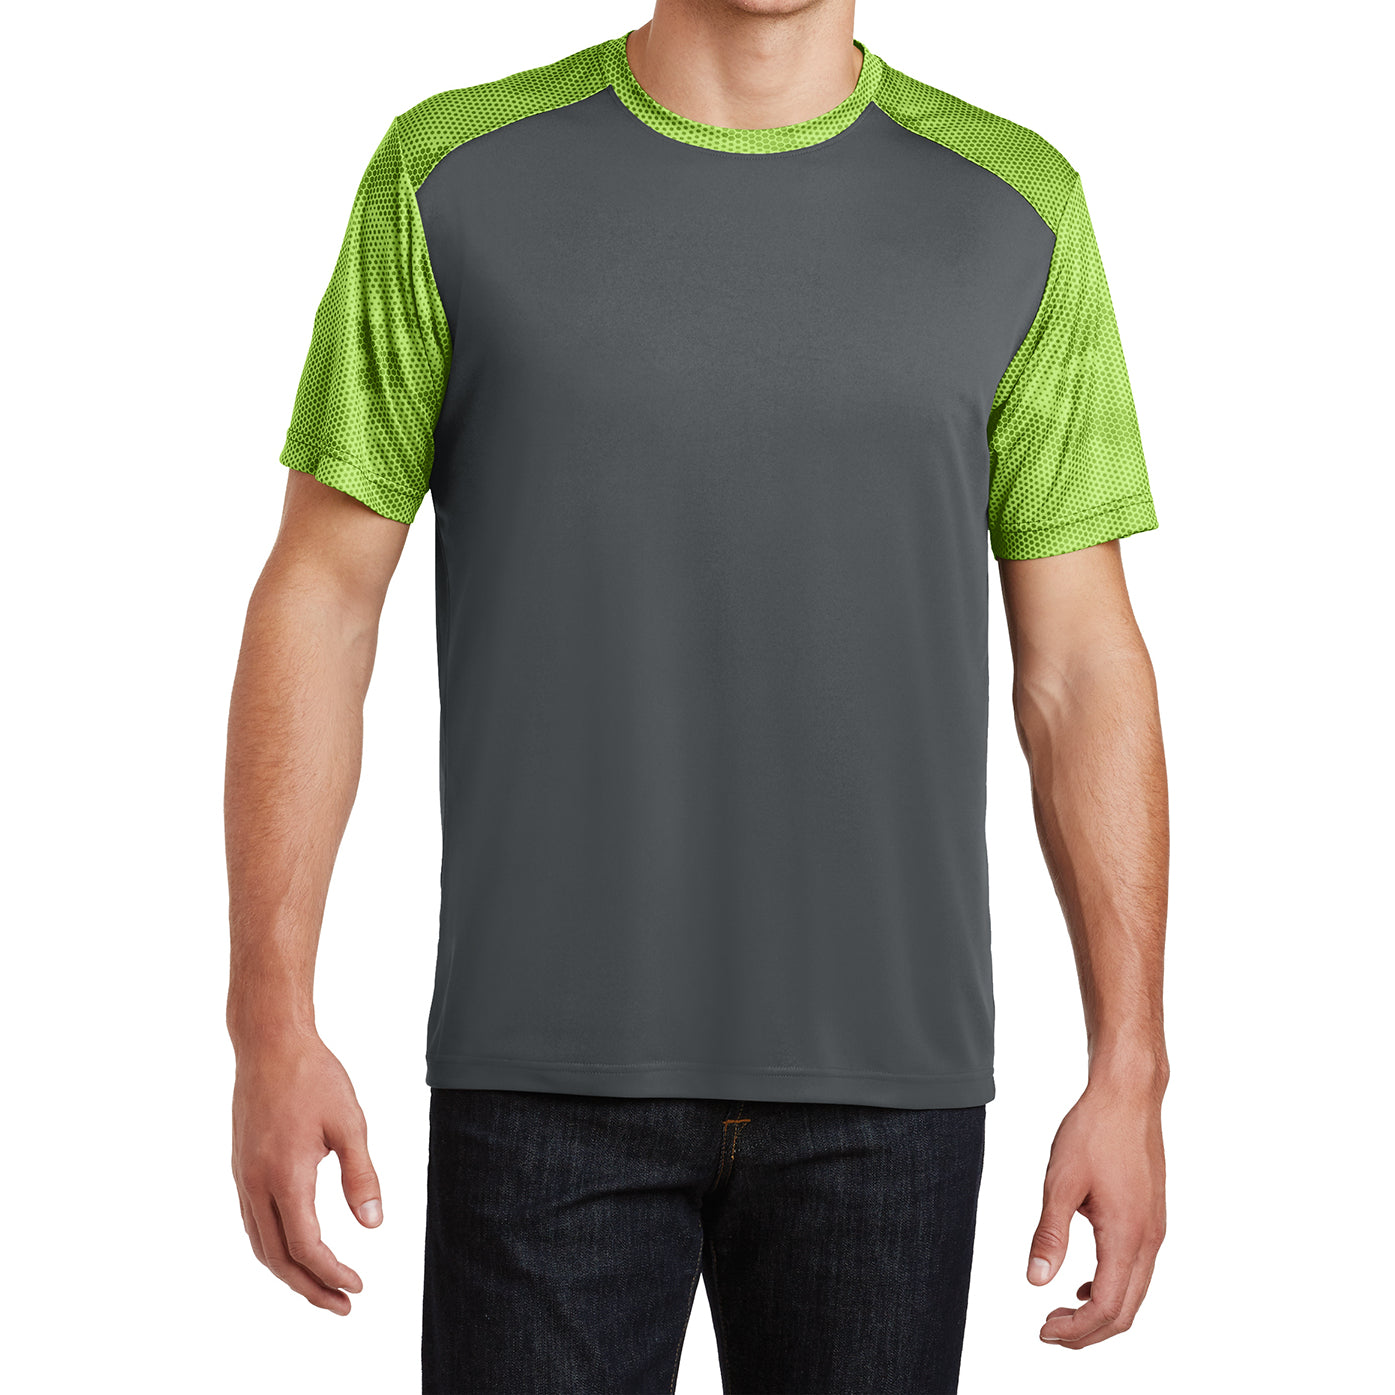 Men's CamoHex Colorblock Tee Shirt Iron Grey/ Lime Shock Front